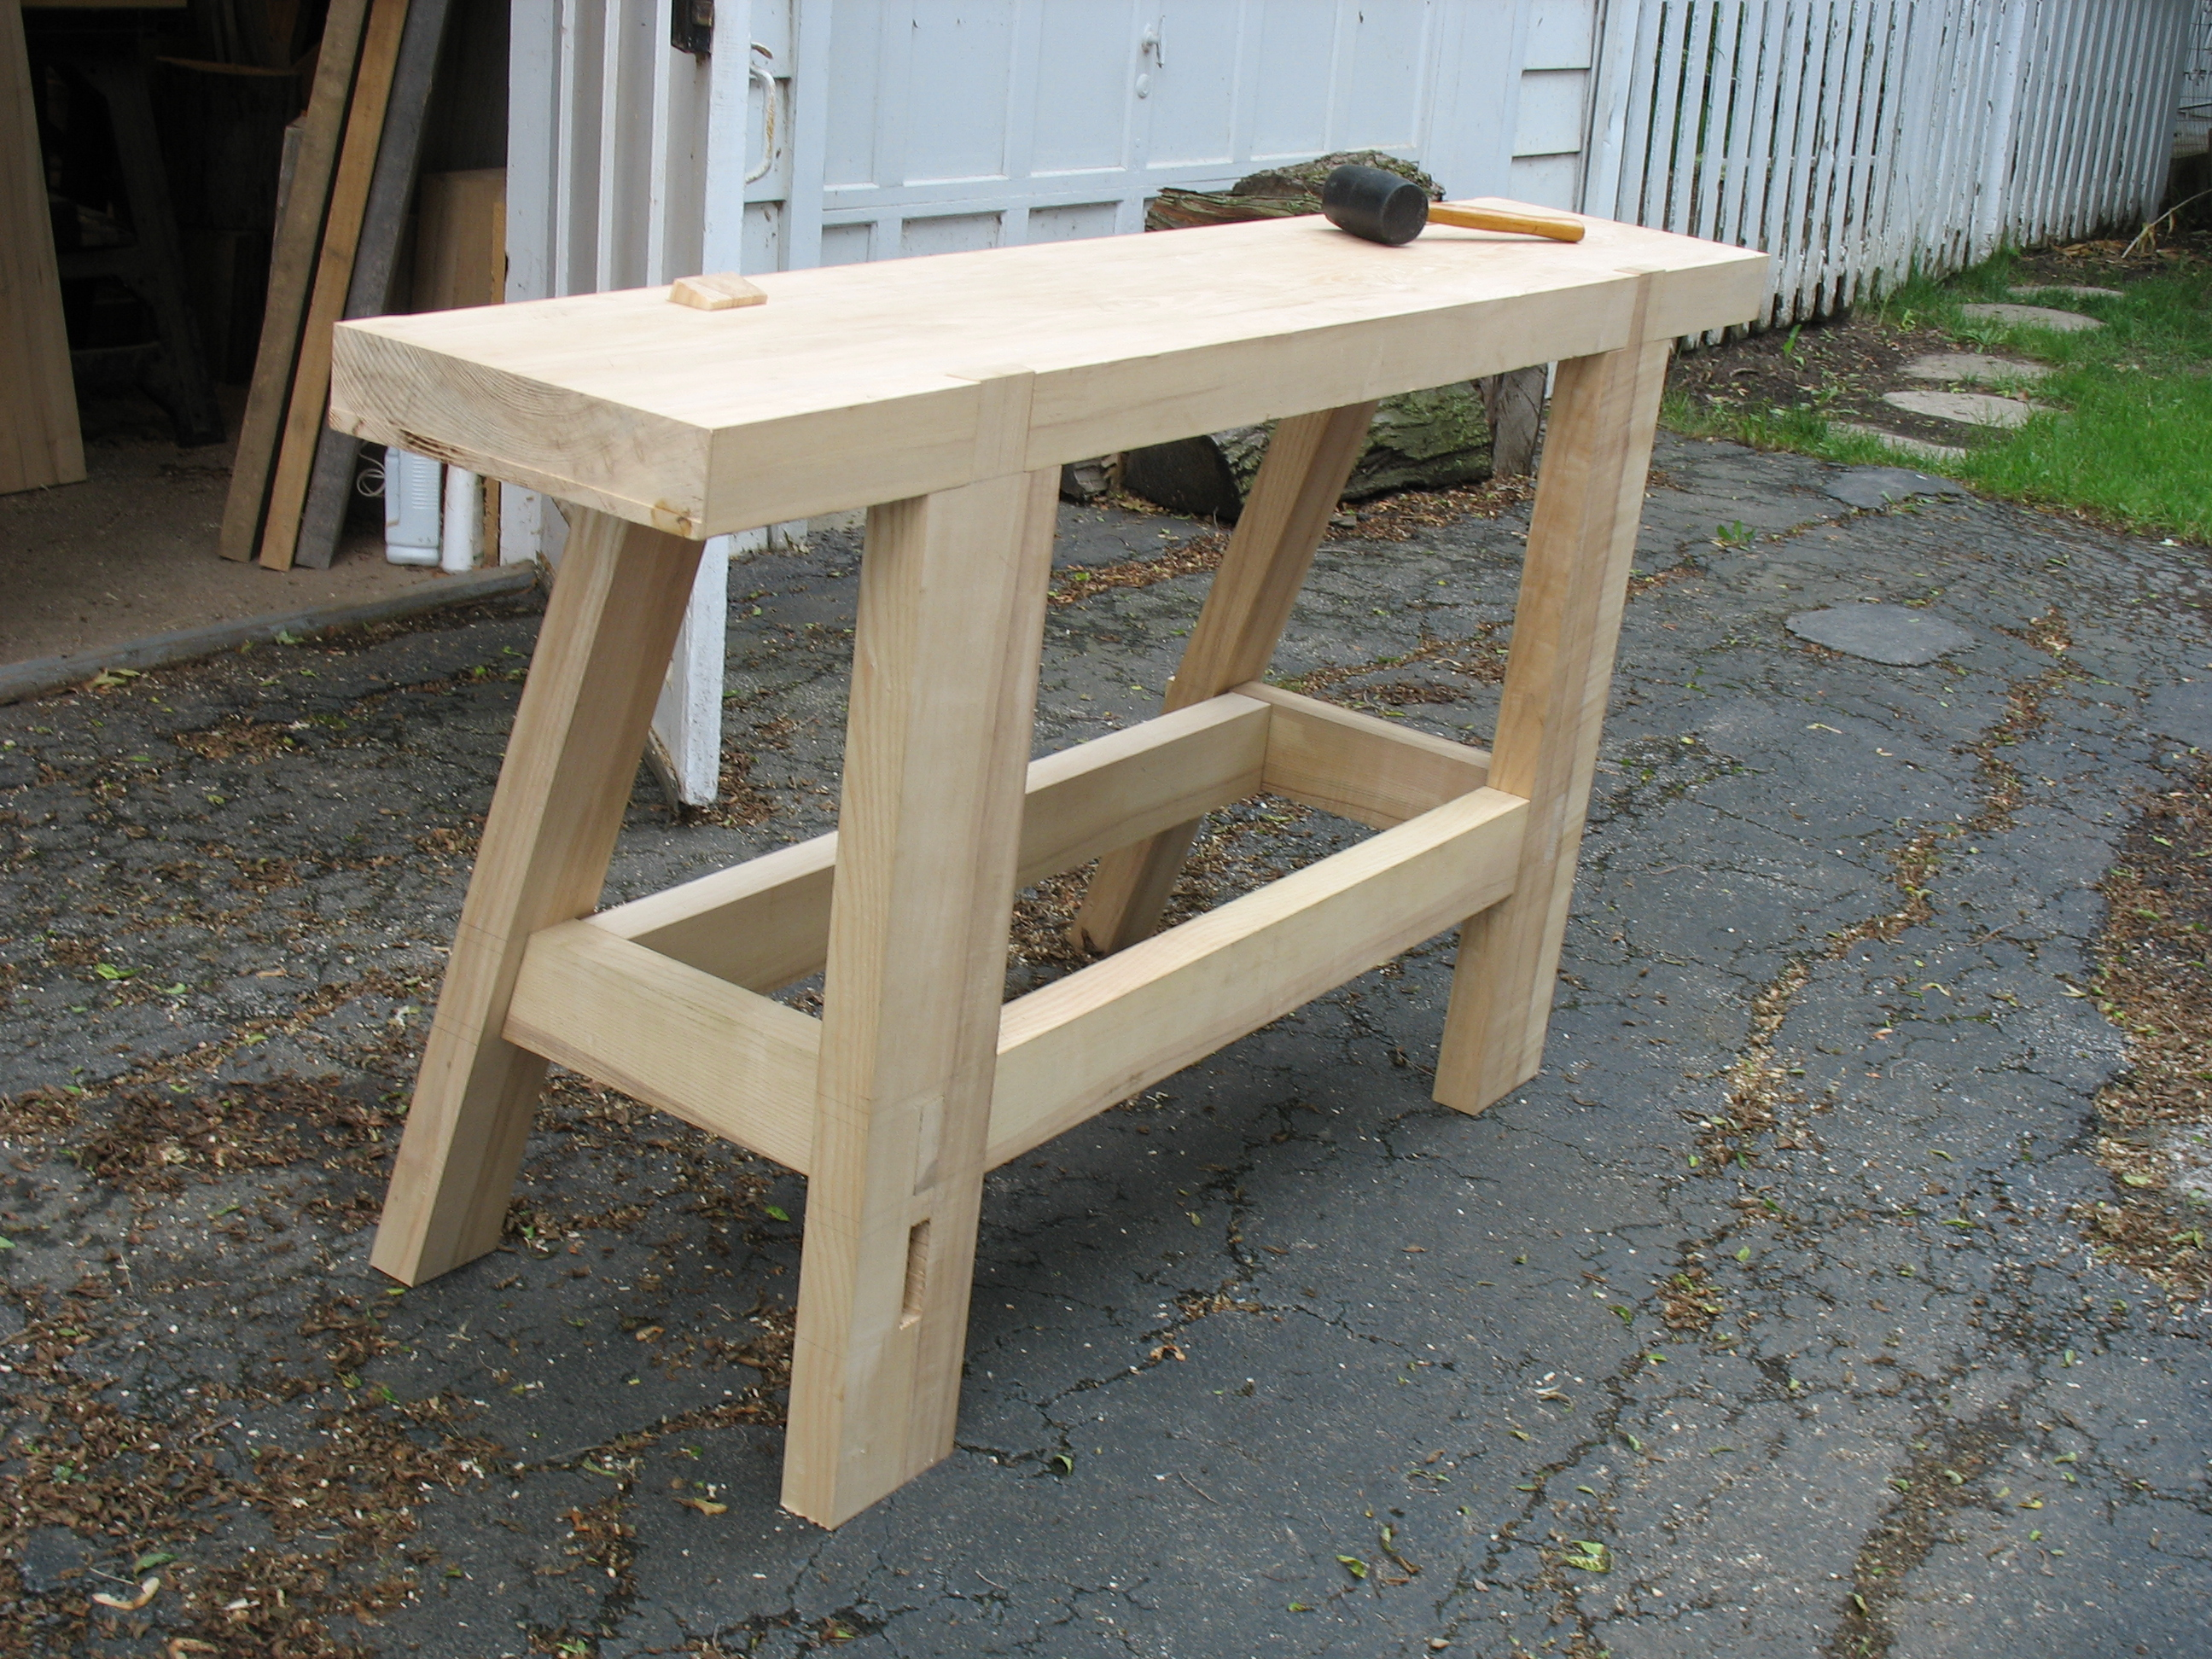 top in place - one single piece of hand-planed ash